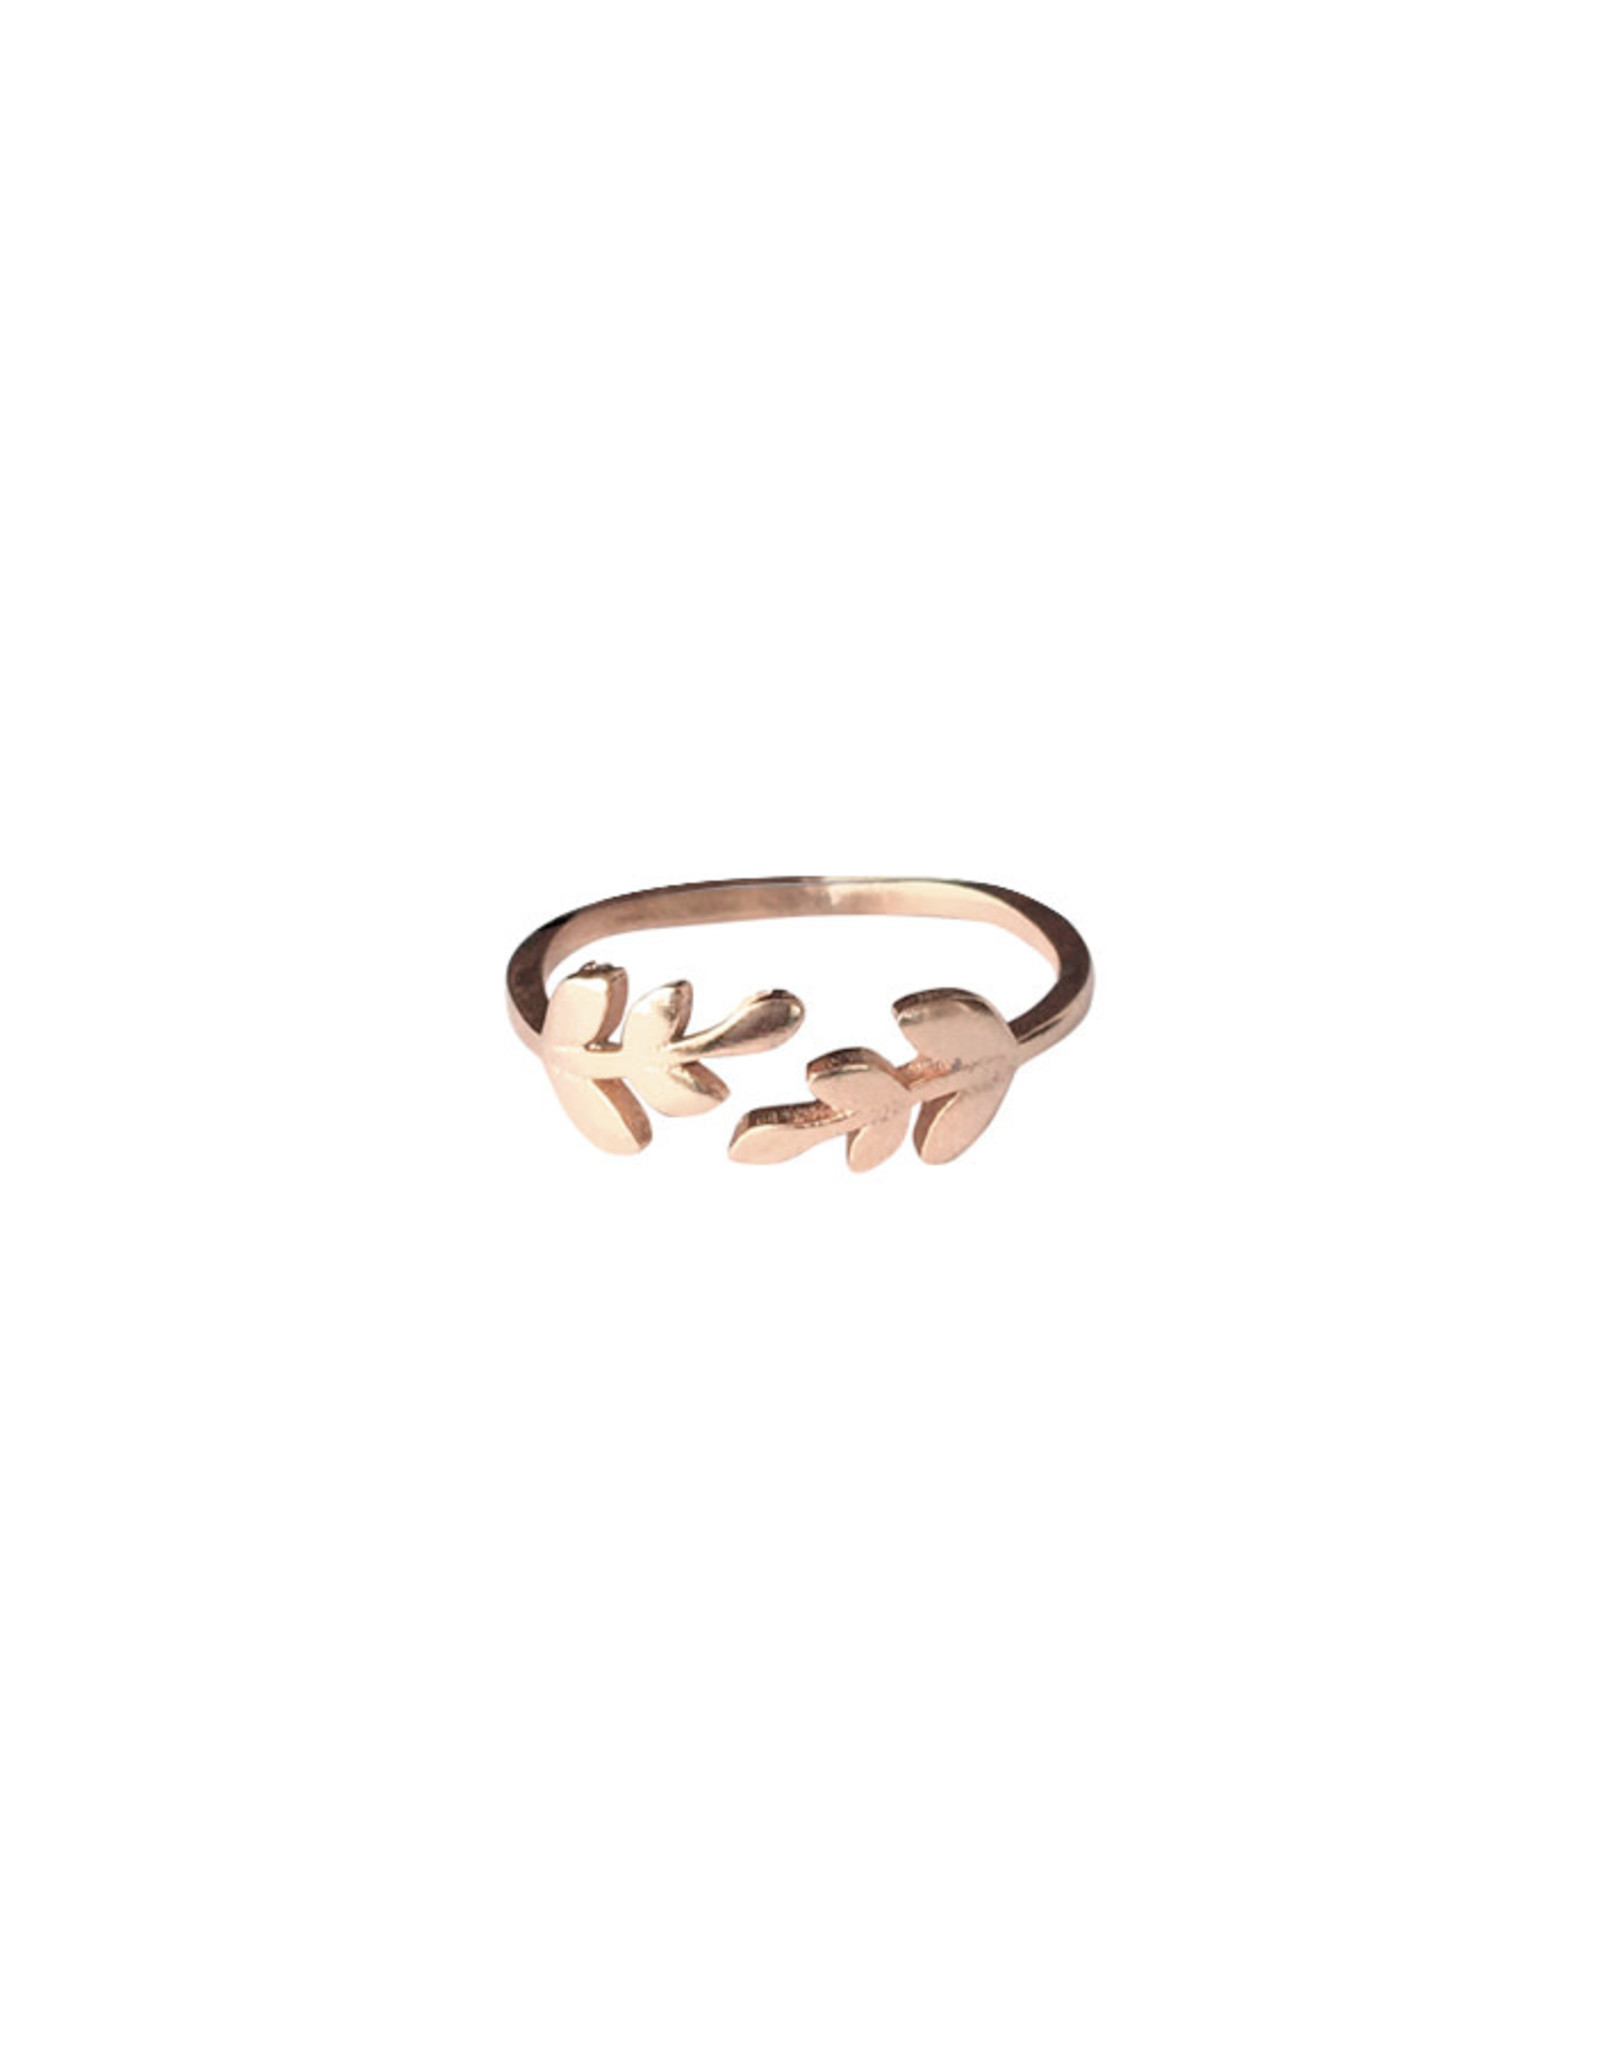 Lost & Faune Bague - Duo de branches - Or rose